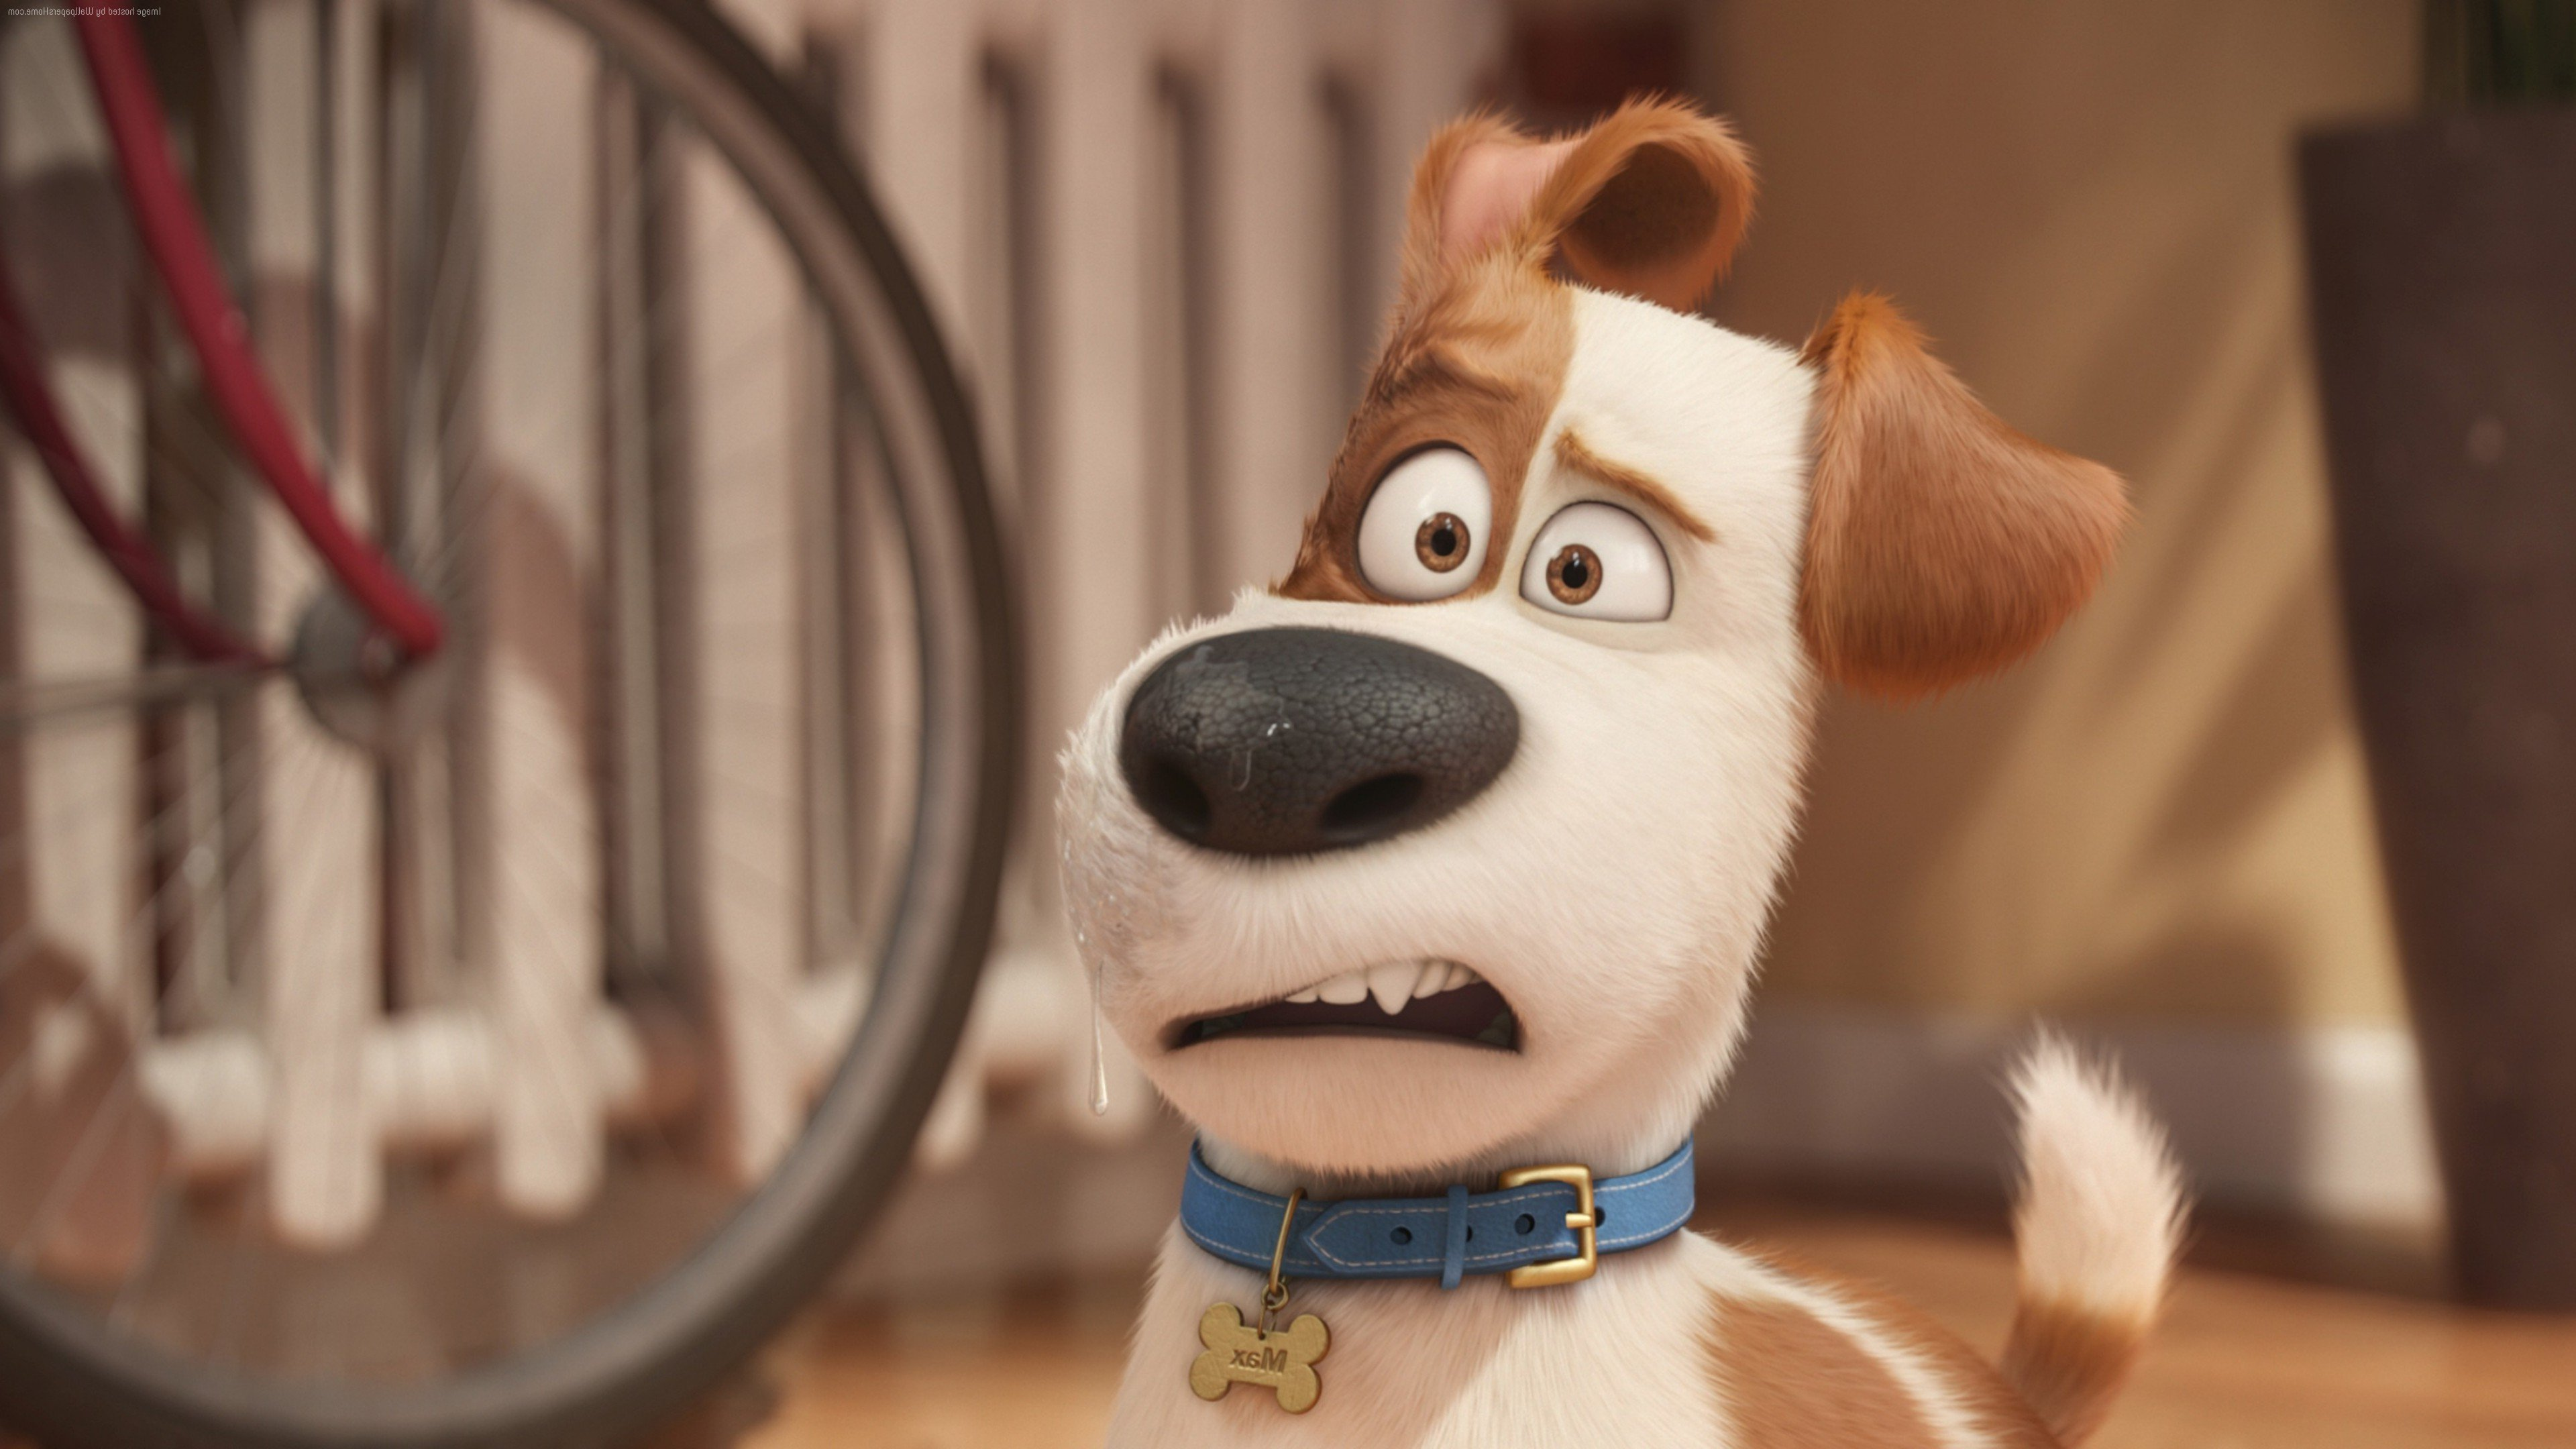 Max The Secret Life Of Pets Hd Movies 4k Wallpapers Images